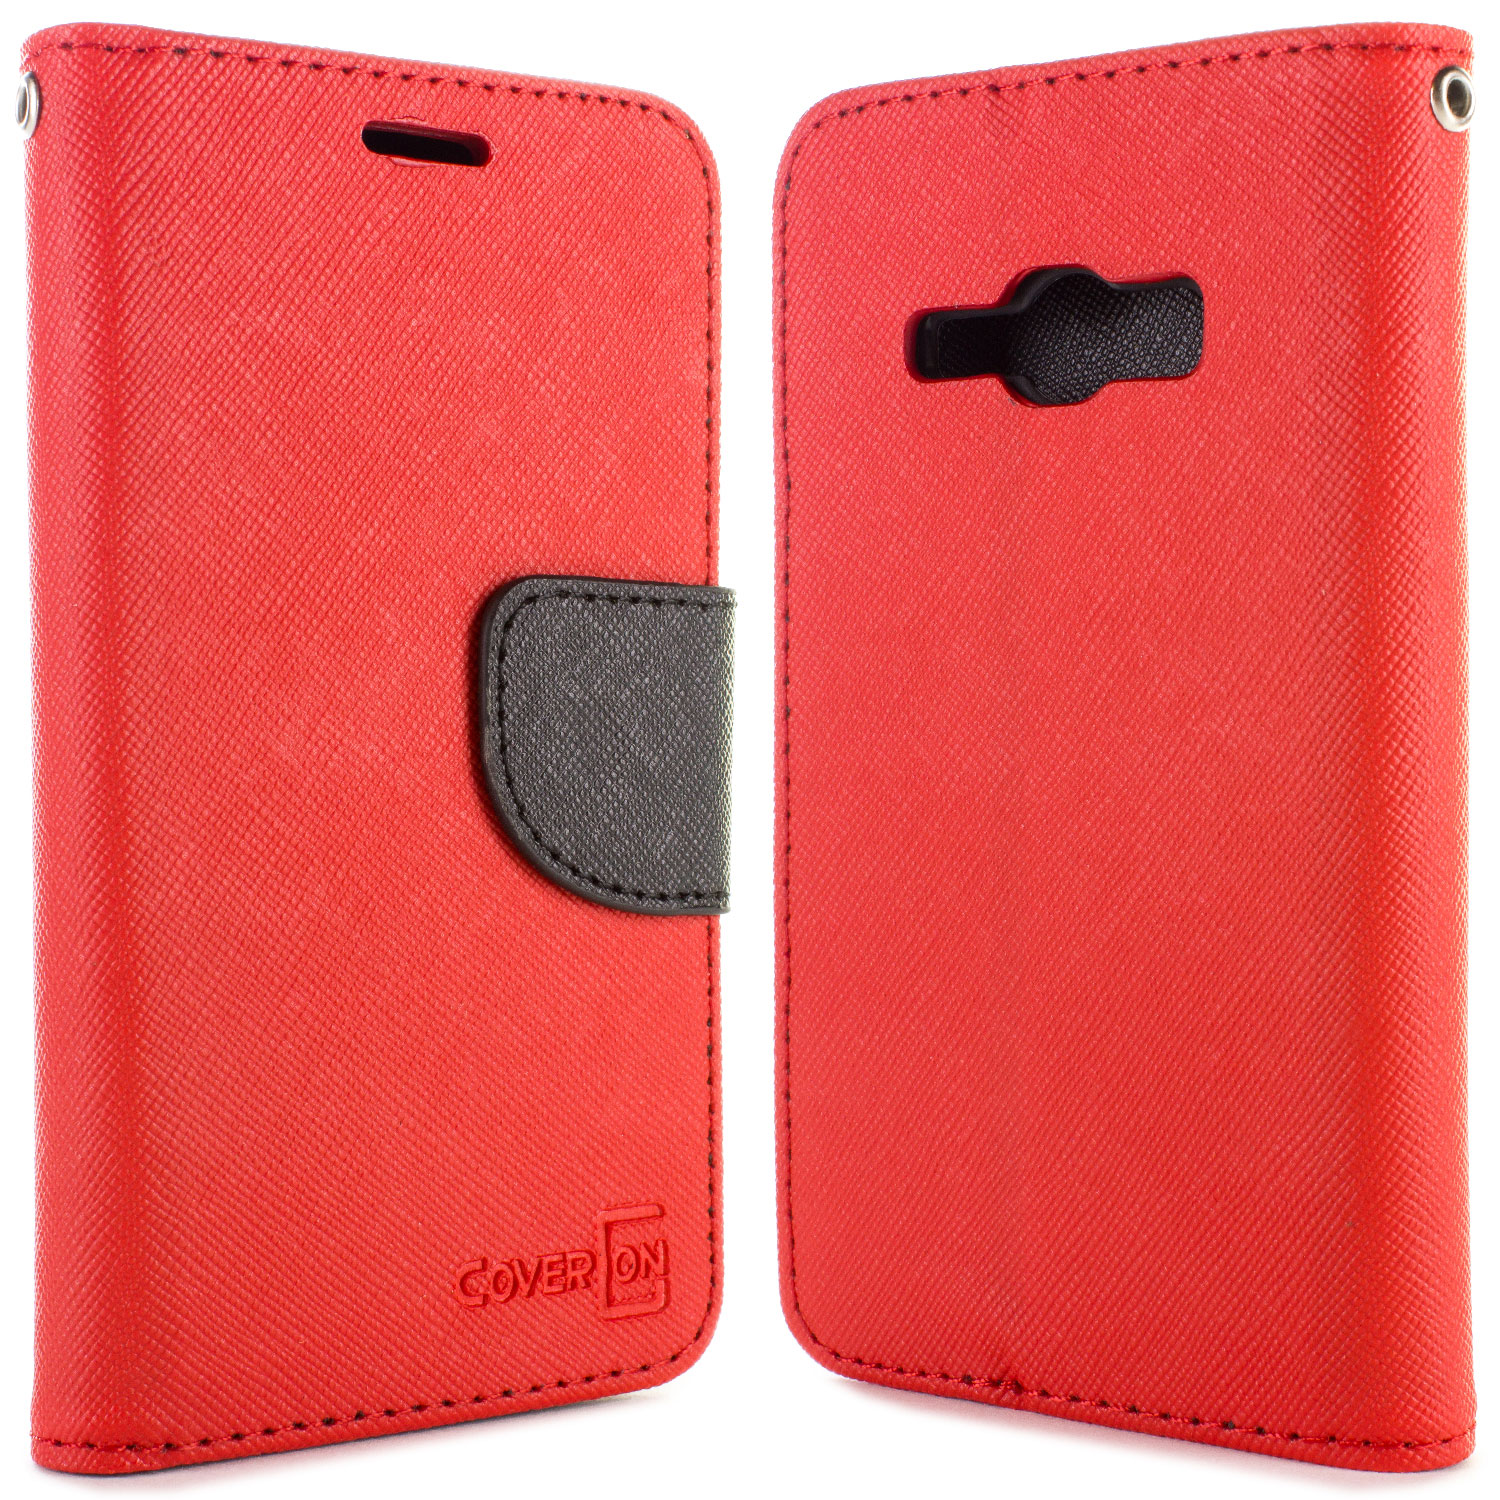 Credit Card Cover For Samsung Galaxy J1 Ace Phone Case Wallet Protector 696453459443 EBay